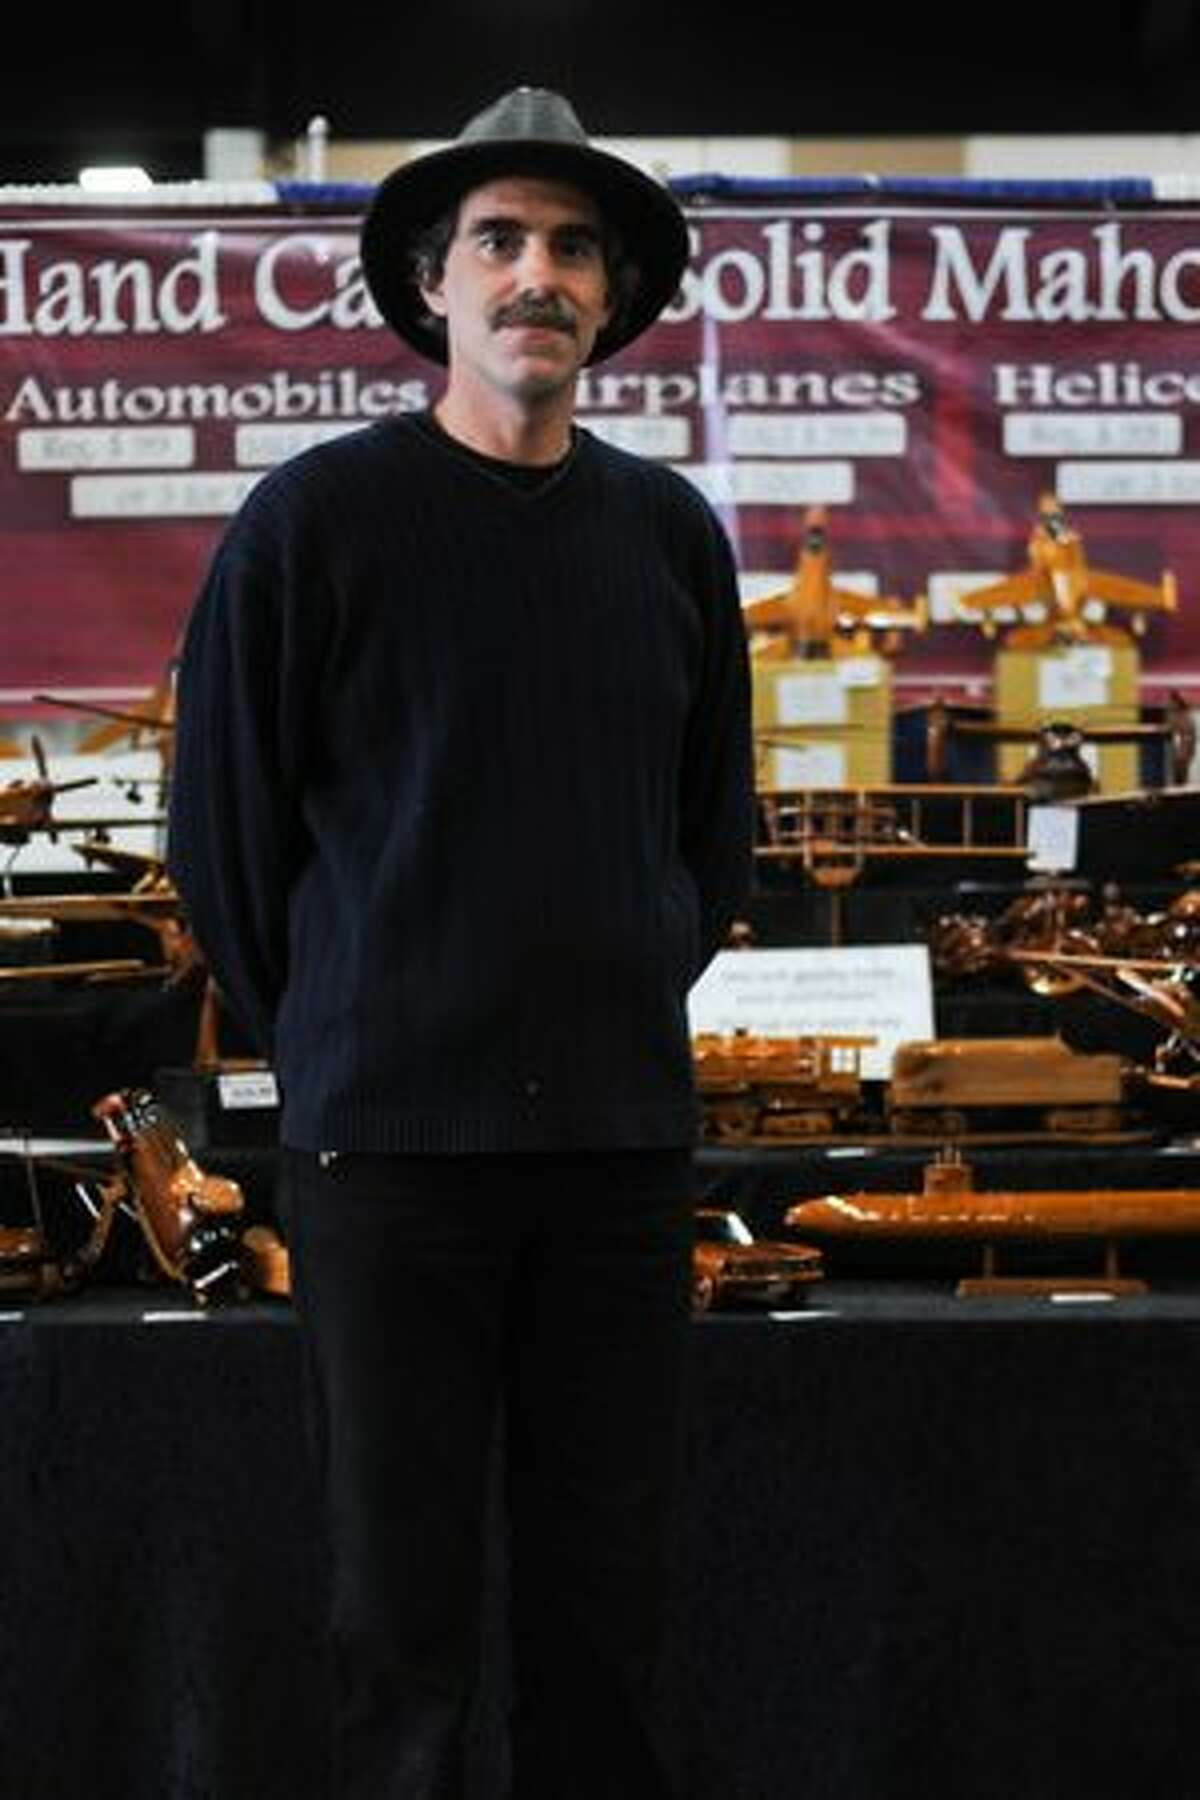 Mike Rhodes stands in front of his booth selling hand-carved mahogany models. He says the carvings originate from a village in Saigon, Vietnam and have been produced for over 27 years.